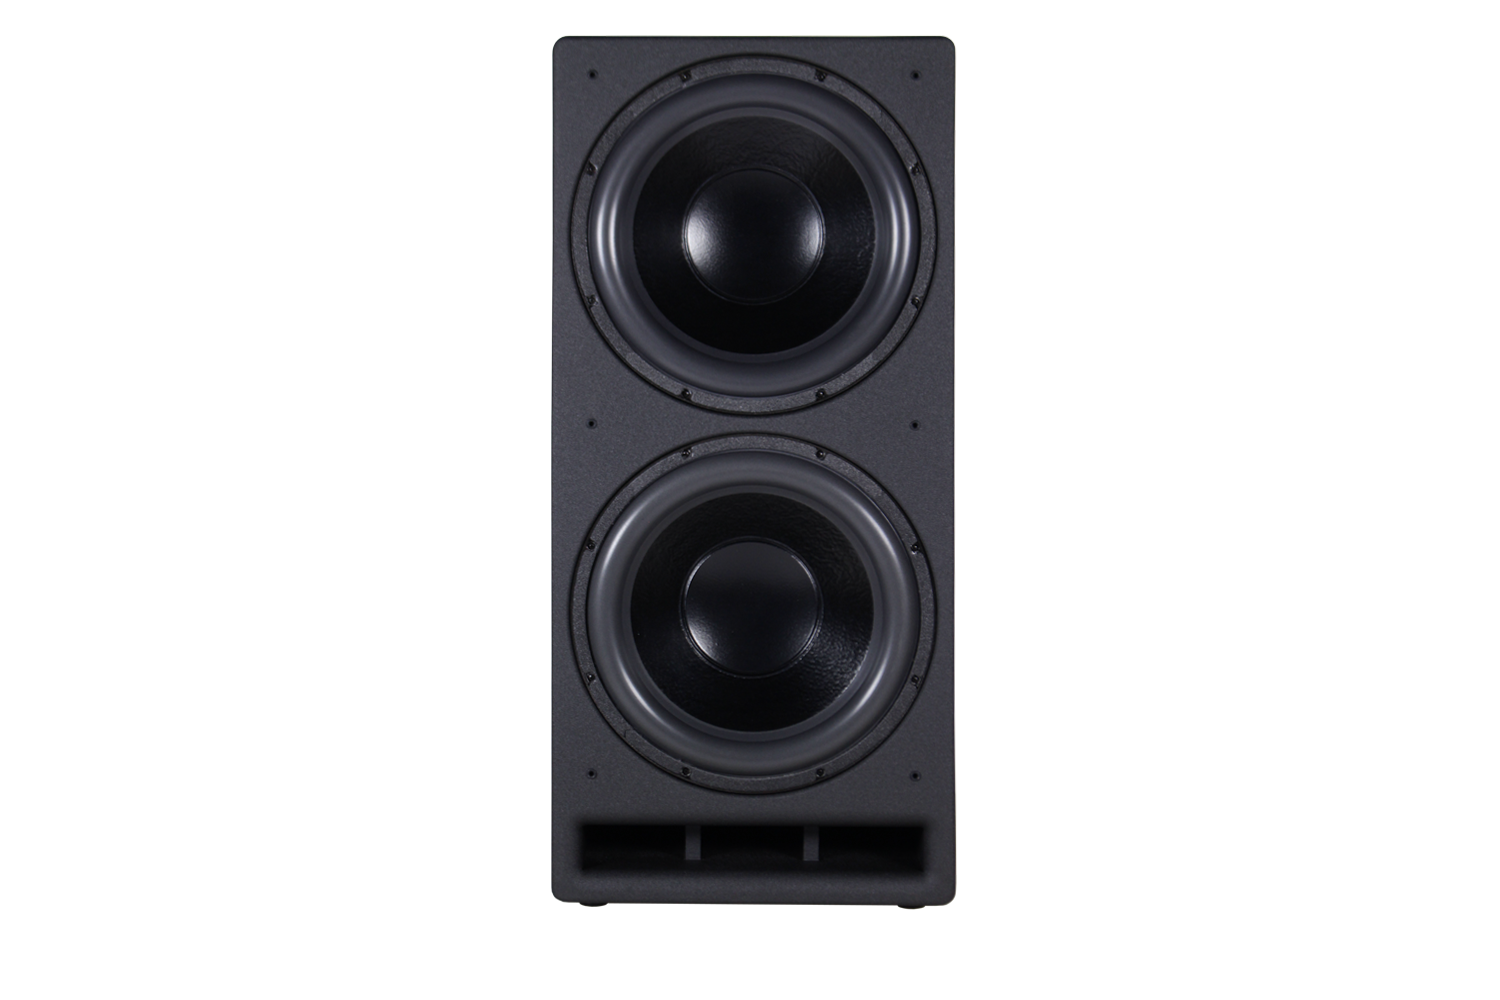 V3601 Home Theater Subwoofer - Power Sound Audio